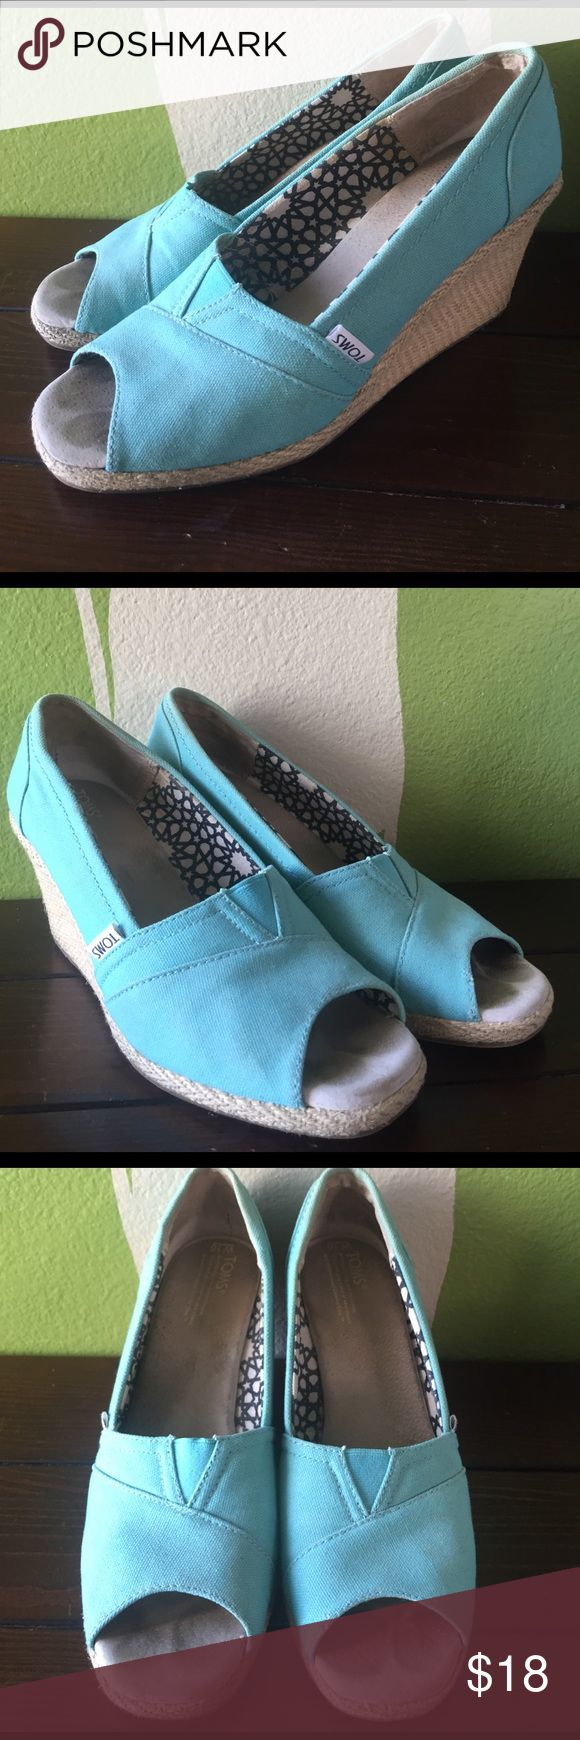 "TOMS turquoise wedges, size 10, 3.5"" heel TOMS turquoise wedges, size 10, 3.5"" heel, good used condition. TOMS Shoes Wedges"